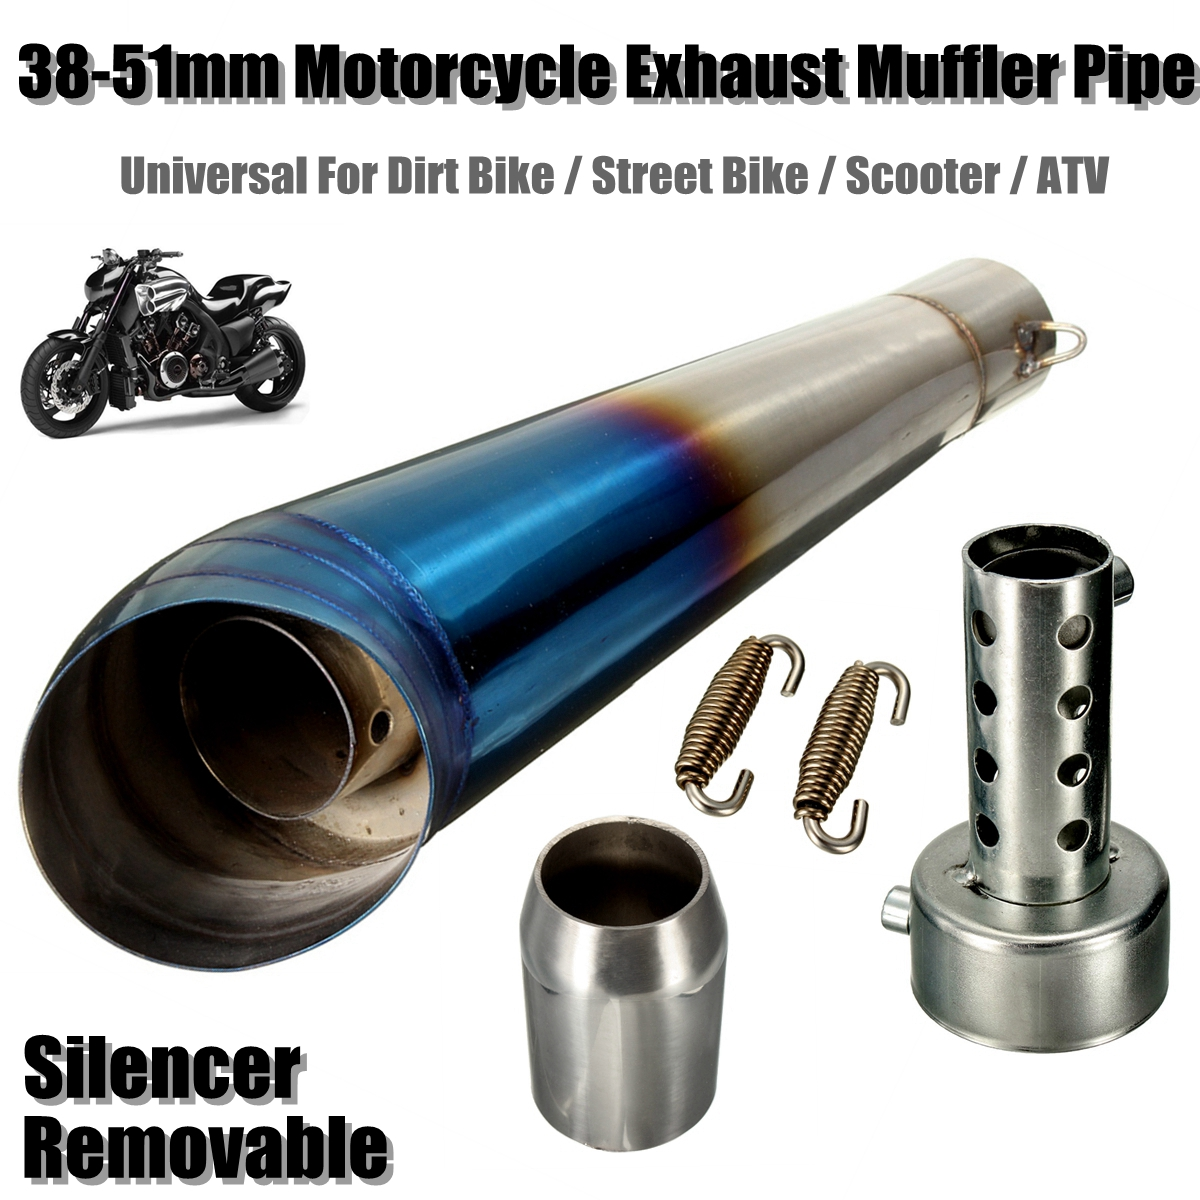 51mm Blue Motorcycle Scooter Stainless Steel Exhaust Muffler Pipe Tip Slip for Street Bike for Dirt Bike for Honda for Yamaha motorcycle gp exhaust universal muffler 38 51mm slip on for dirt bike street bike scooter atv quad new